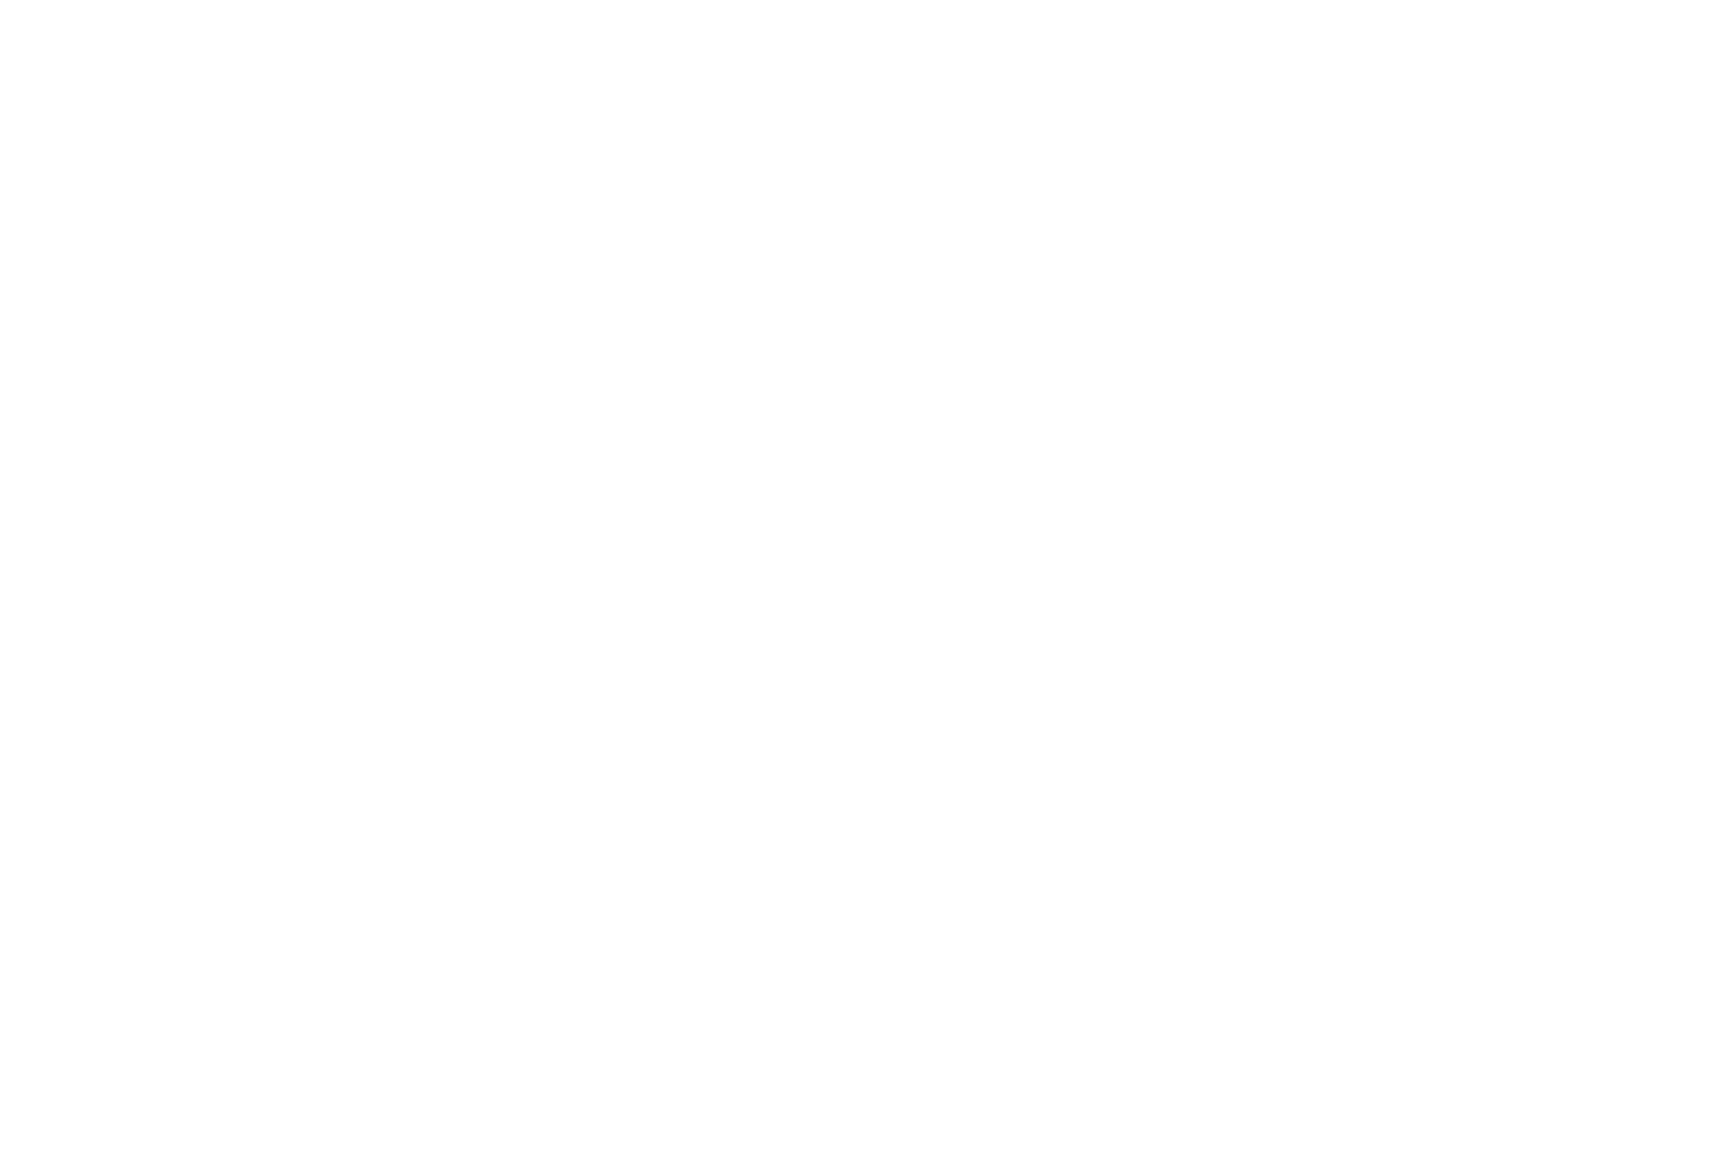 Best in Show - Elkhorn Valley Film and Media Conference - 2013.png